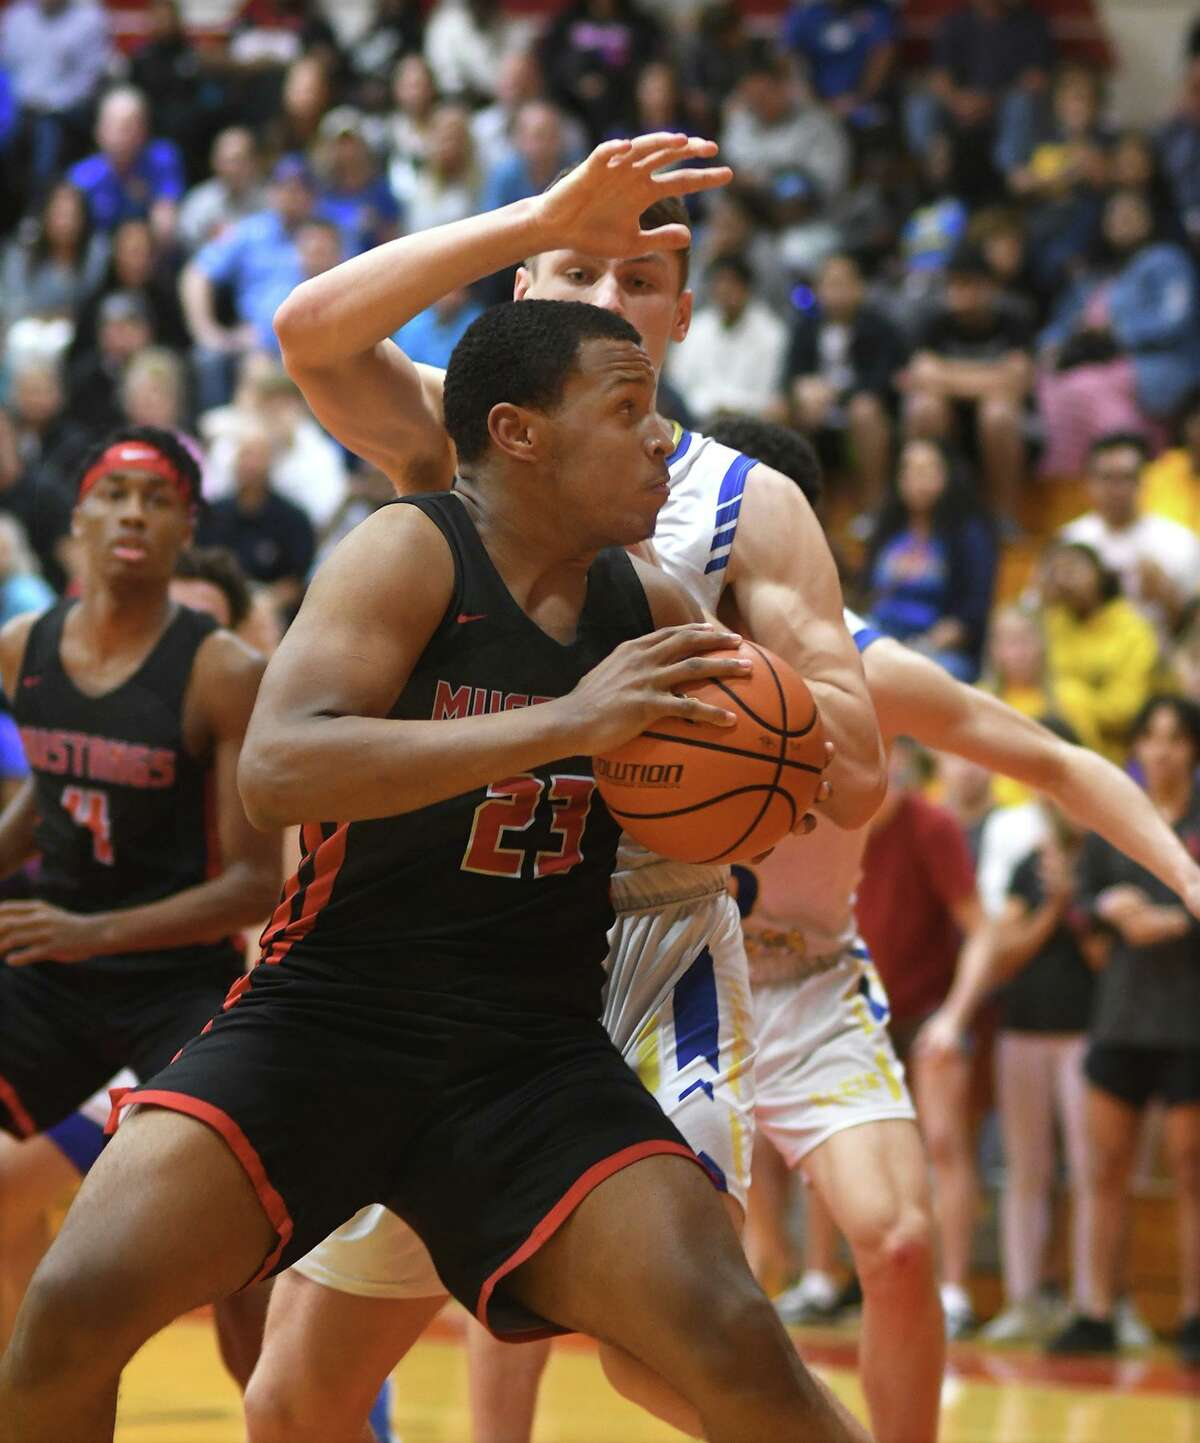 Westfield sophomore Willie Williams (23) works for a shot against Klein junior post Mason Tharp during the second quarter of their Boys Basketball Region II-6A Quarterfinal playoff game at Tomball High School on March 3, 2020.